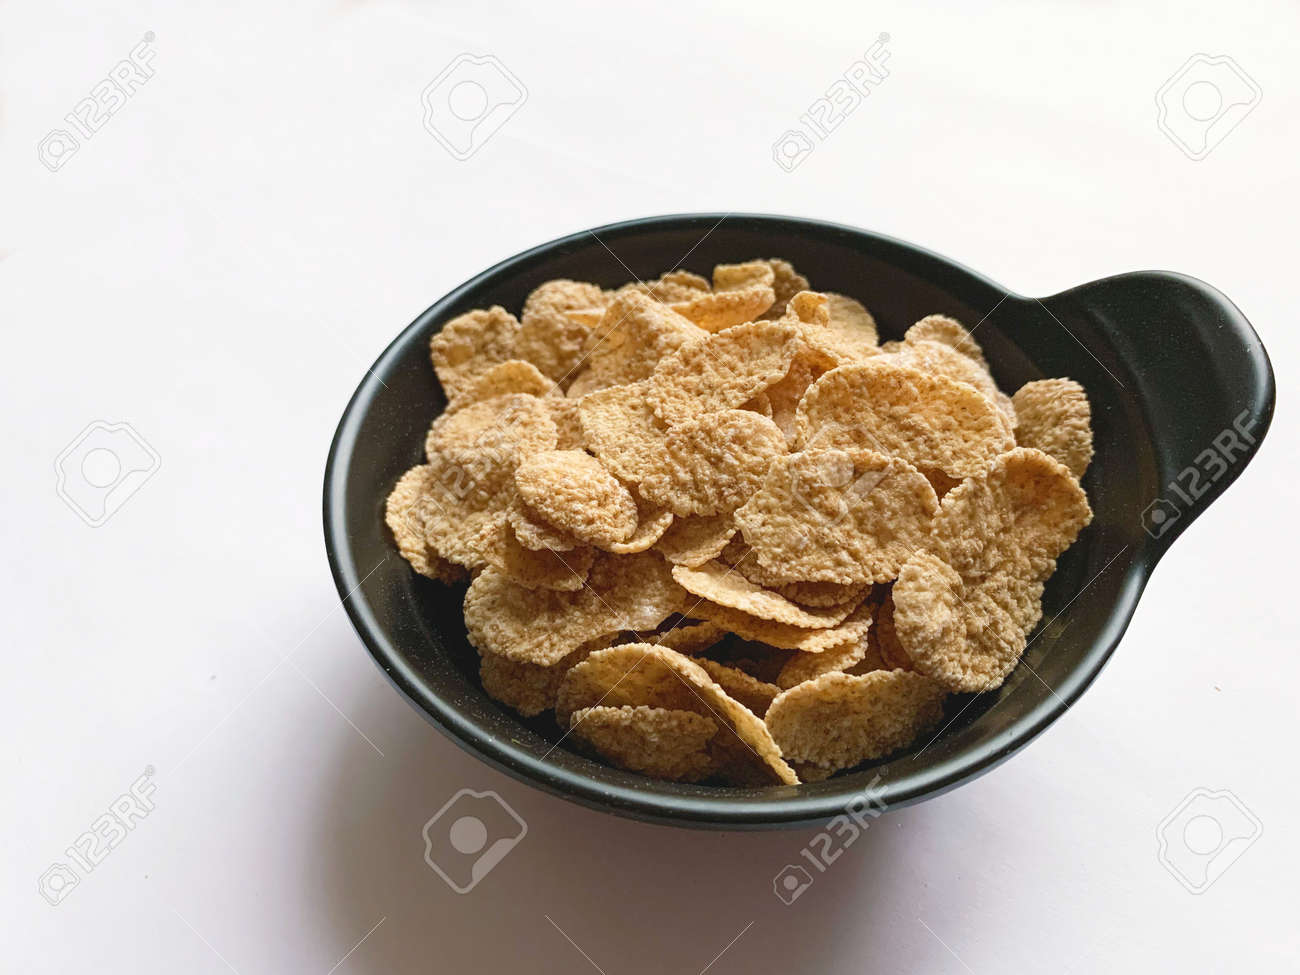 Multi-cereal flakes in a black cup on white background. Closeup. - 169603124